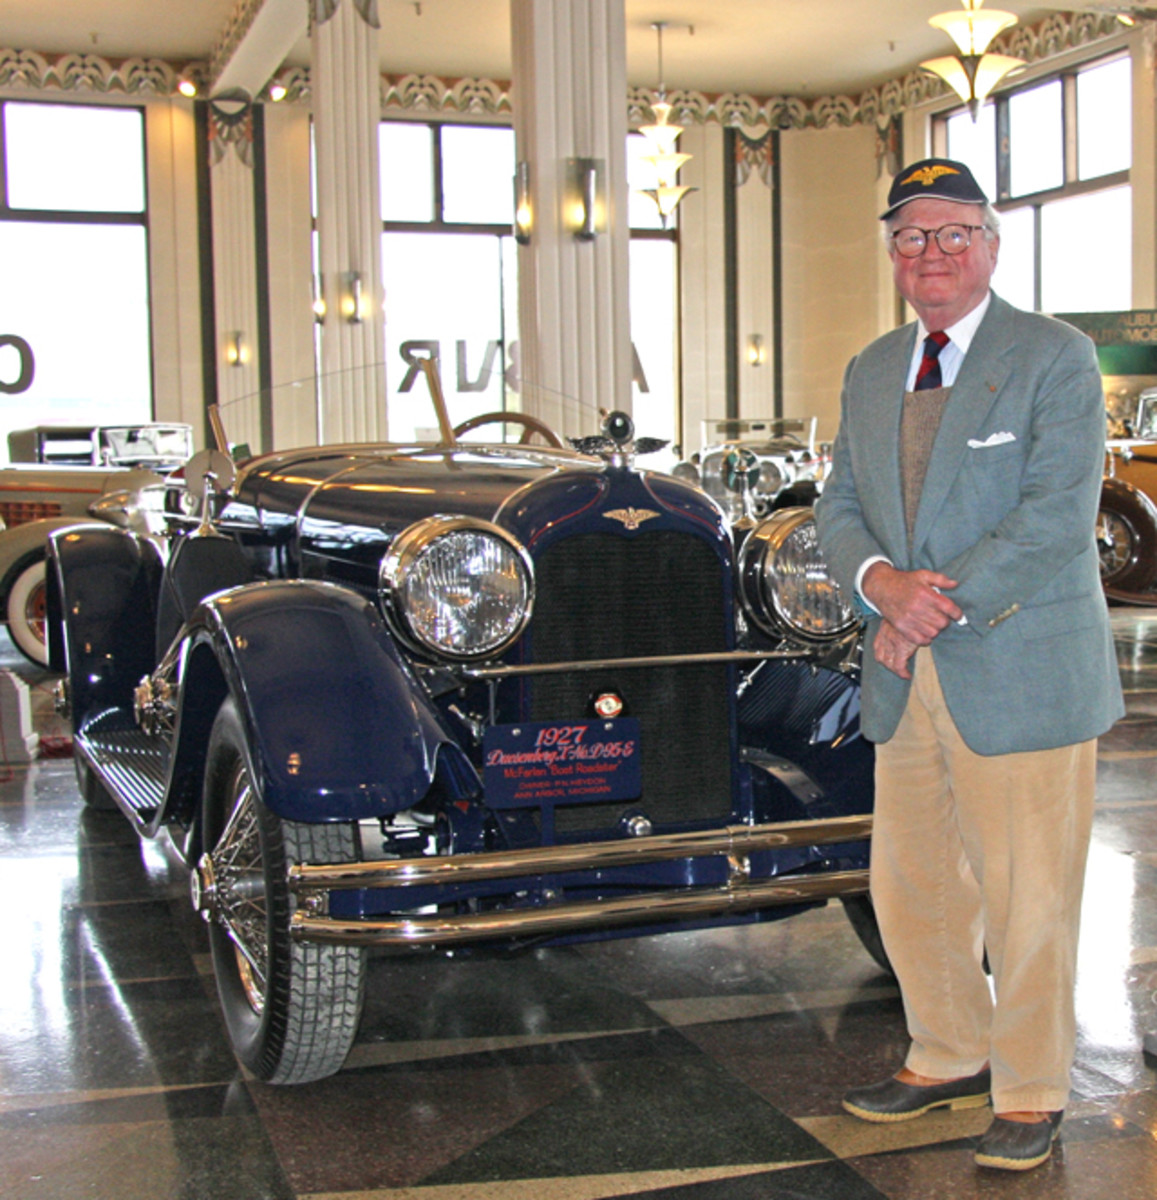 Peter Heydon of Ann Arbor, Michigan placed the 1927 Duesenberg Model X Speedster he donated to the permanent collection of the Auburn Cord Duesenberg Automobile Museum in its art deco showroom Friday morning. It is now on display for visitors to admire and relish in its uniqueness.